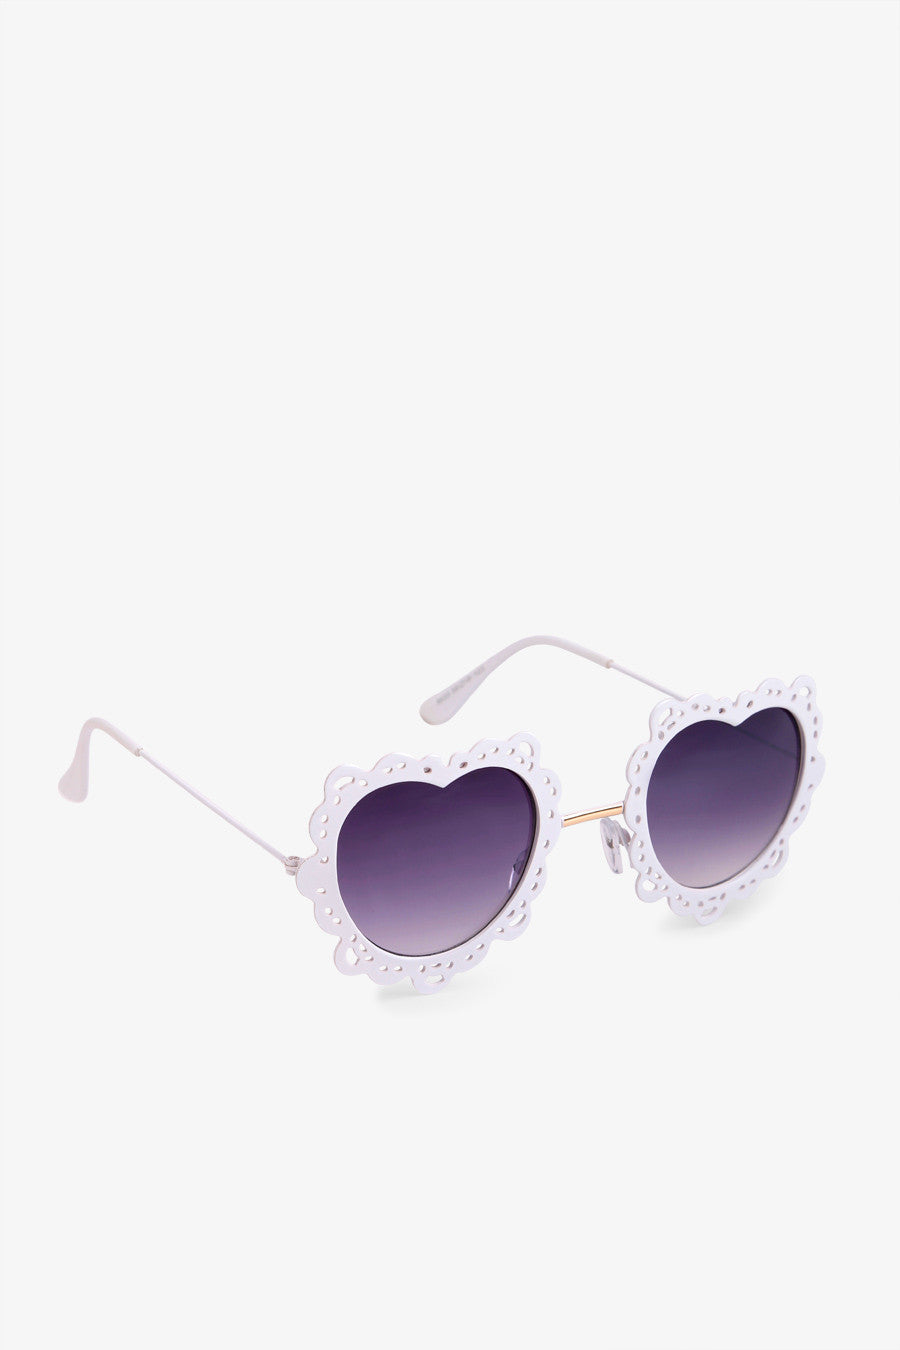 70s Heart Sunglasses Shaped White Shaped Heart 70s White Sunglasses 70s wOvmNP0y8n